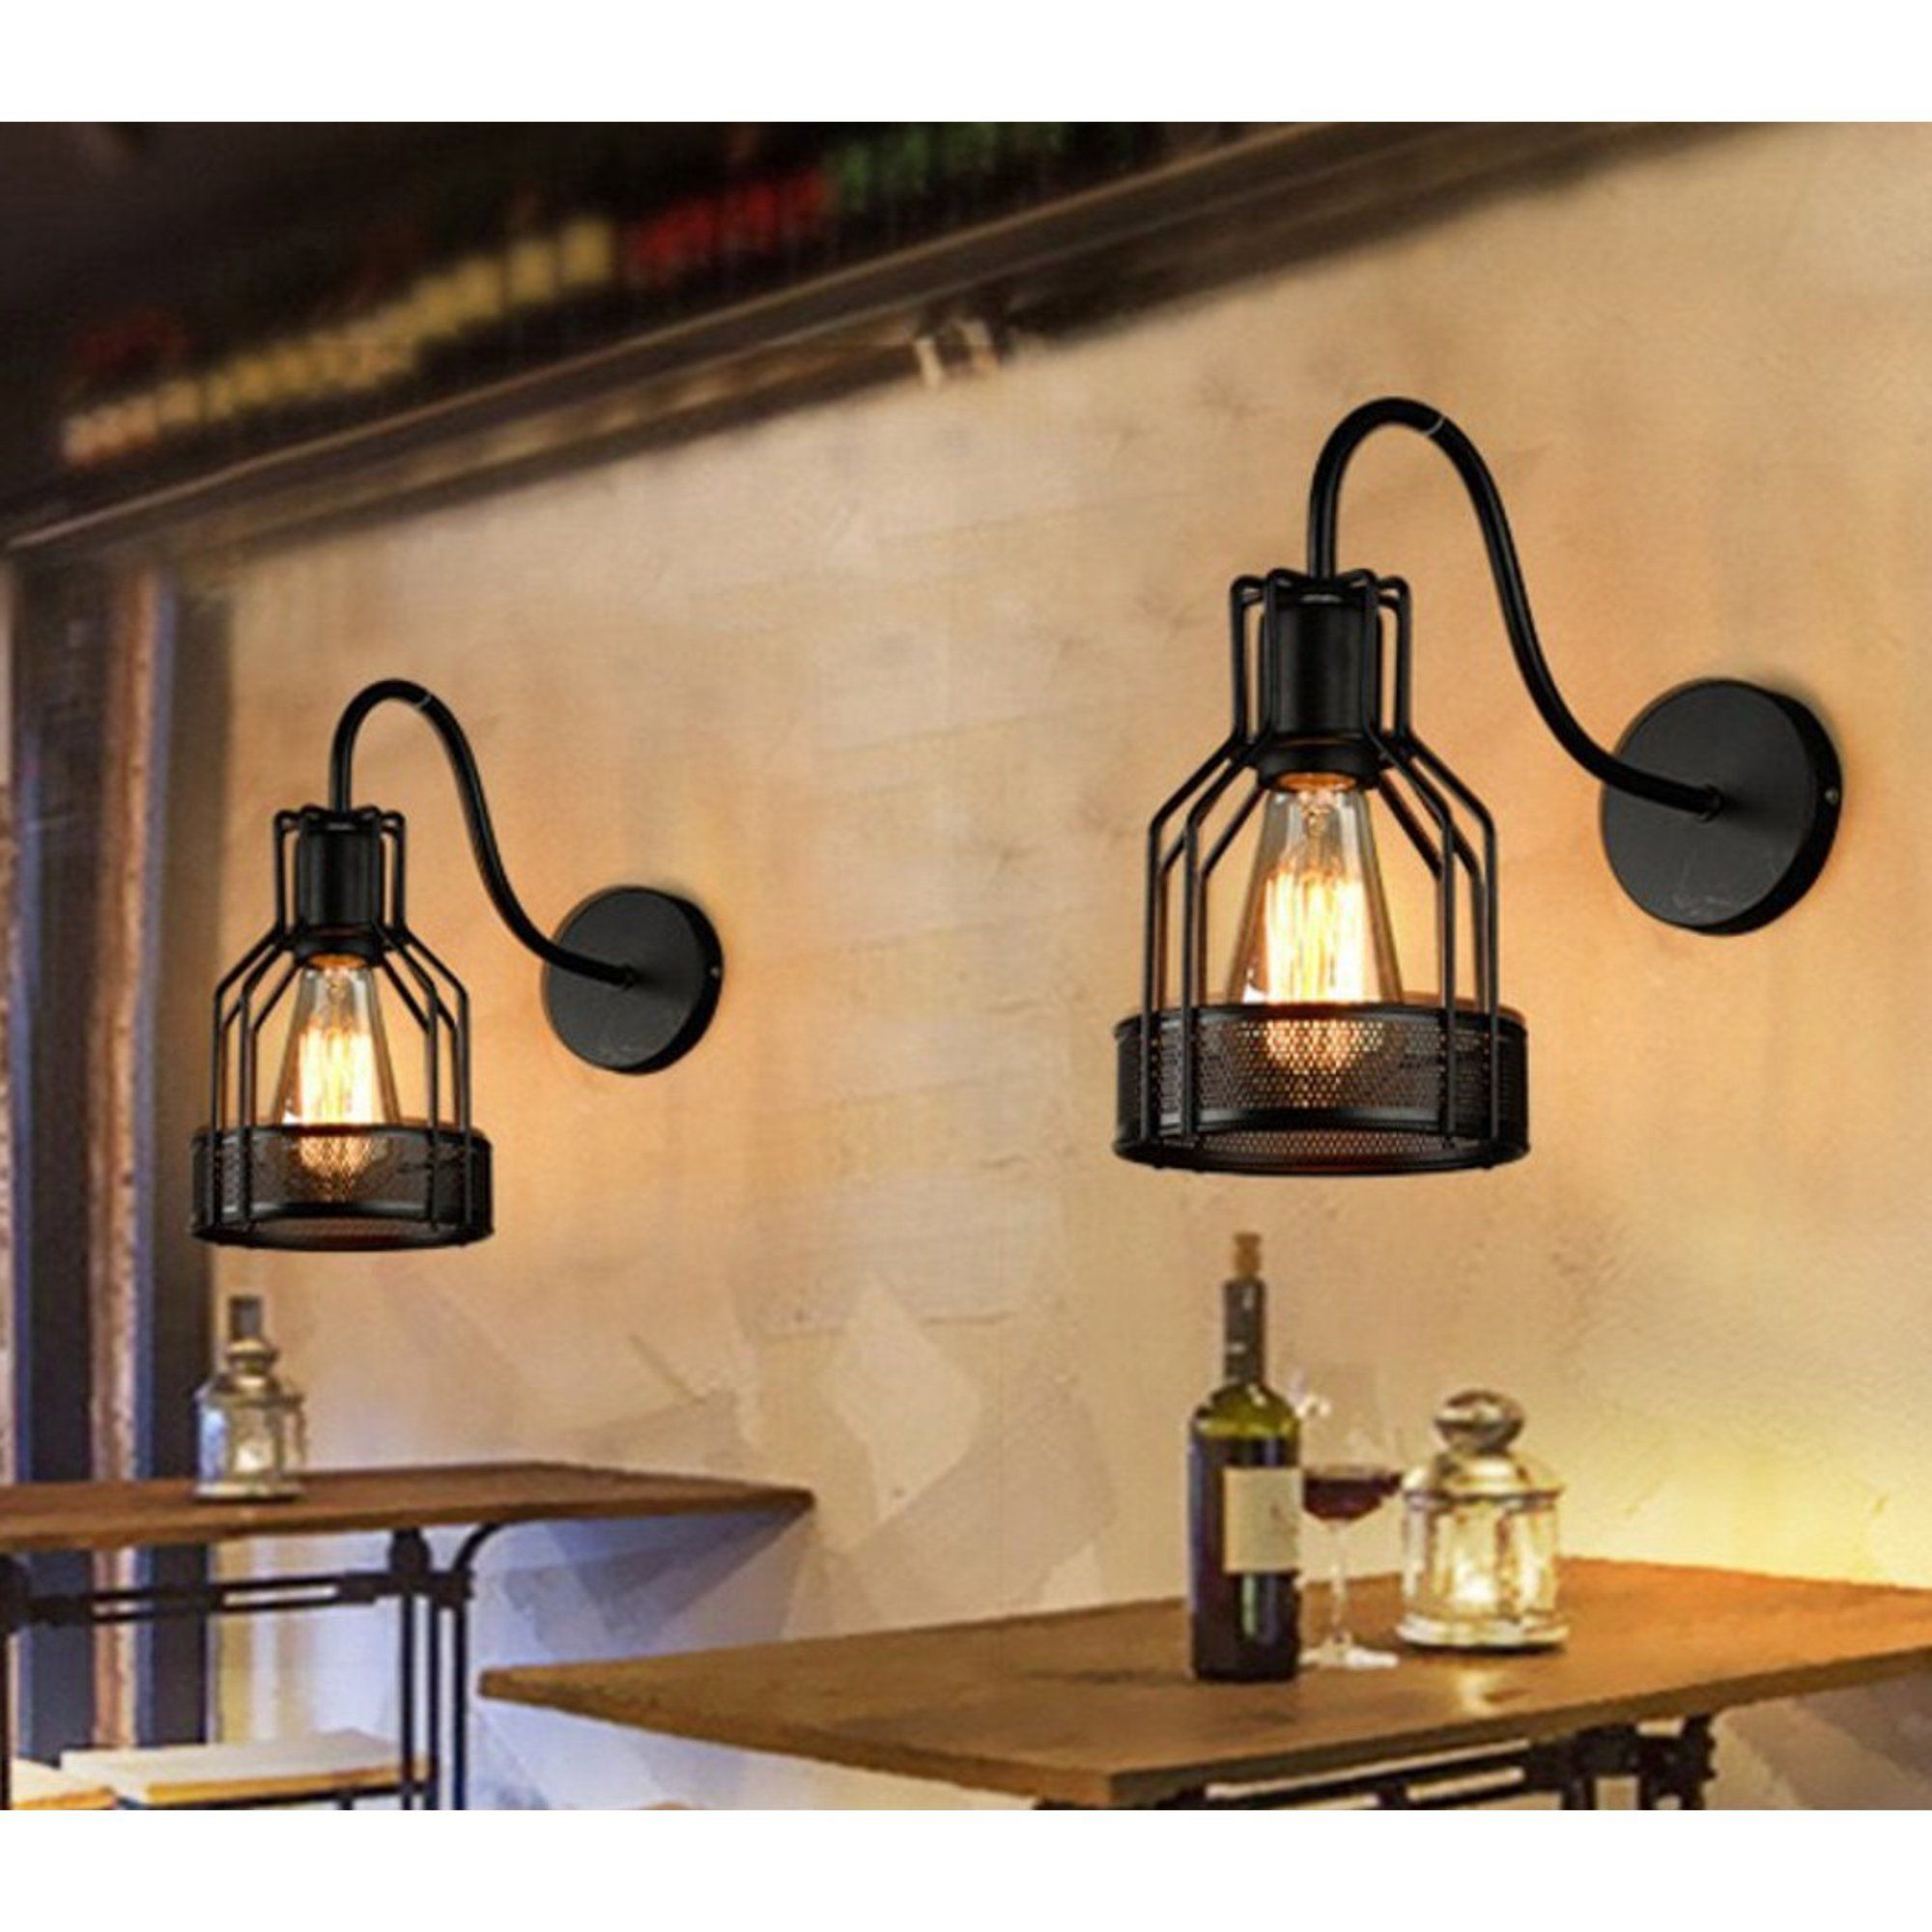 Retro Black Wall Sconce Lighting Gooseneck Barn Flat Lights Industrial Vintage Farmhouse Wall Lamp Outside Led Light Fixtures Set Of Two Hardwired Walmart Com Farmhouse Wall Sconces Farmhouse Light Fixtures Wall